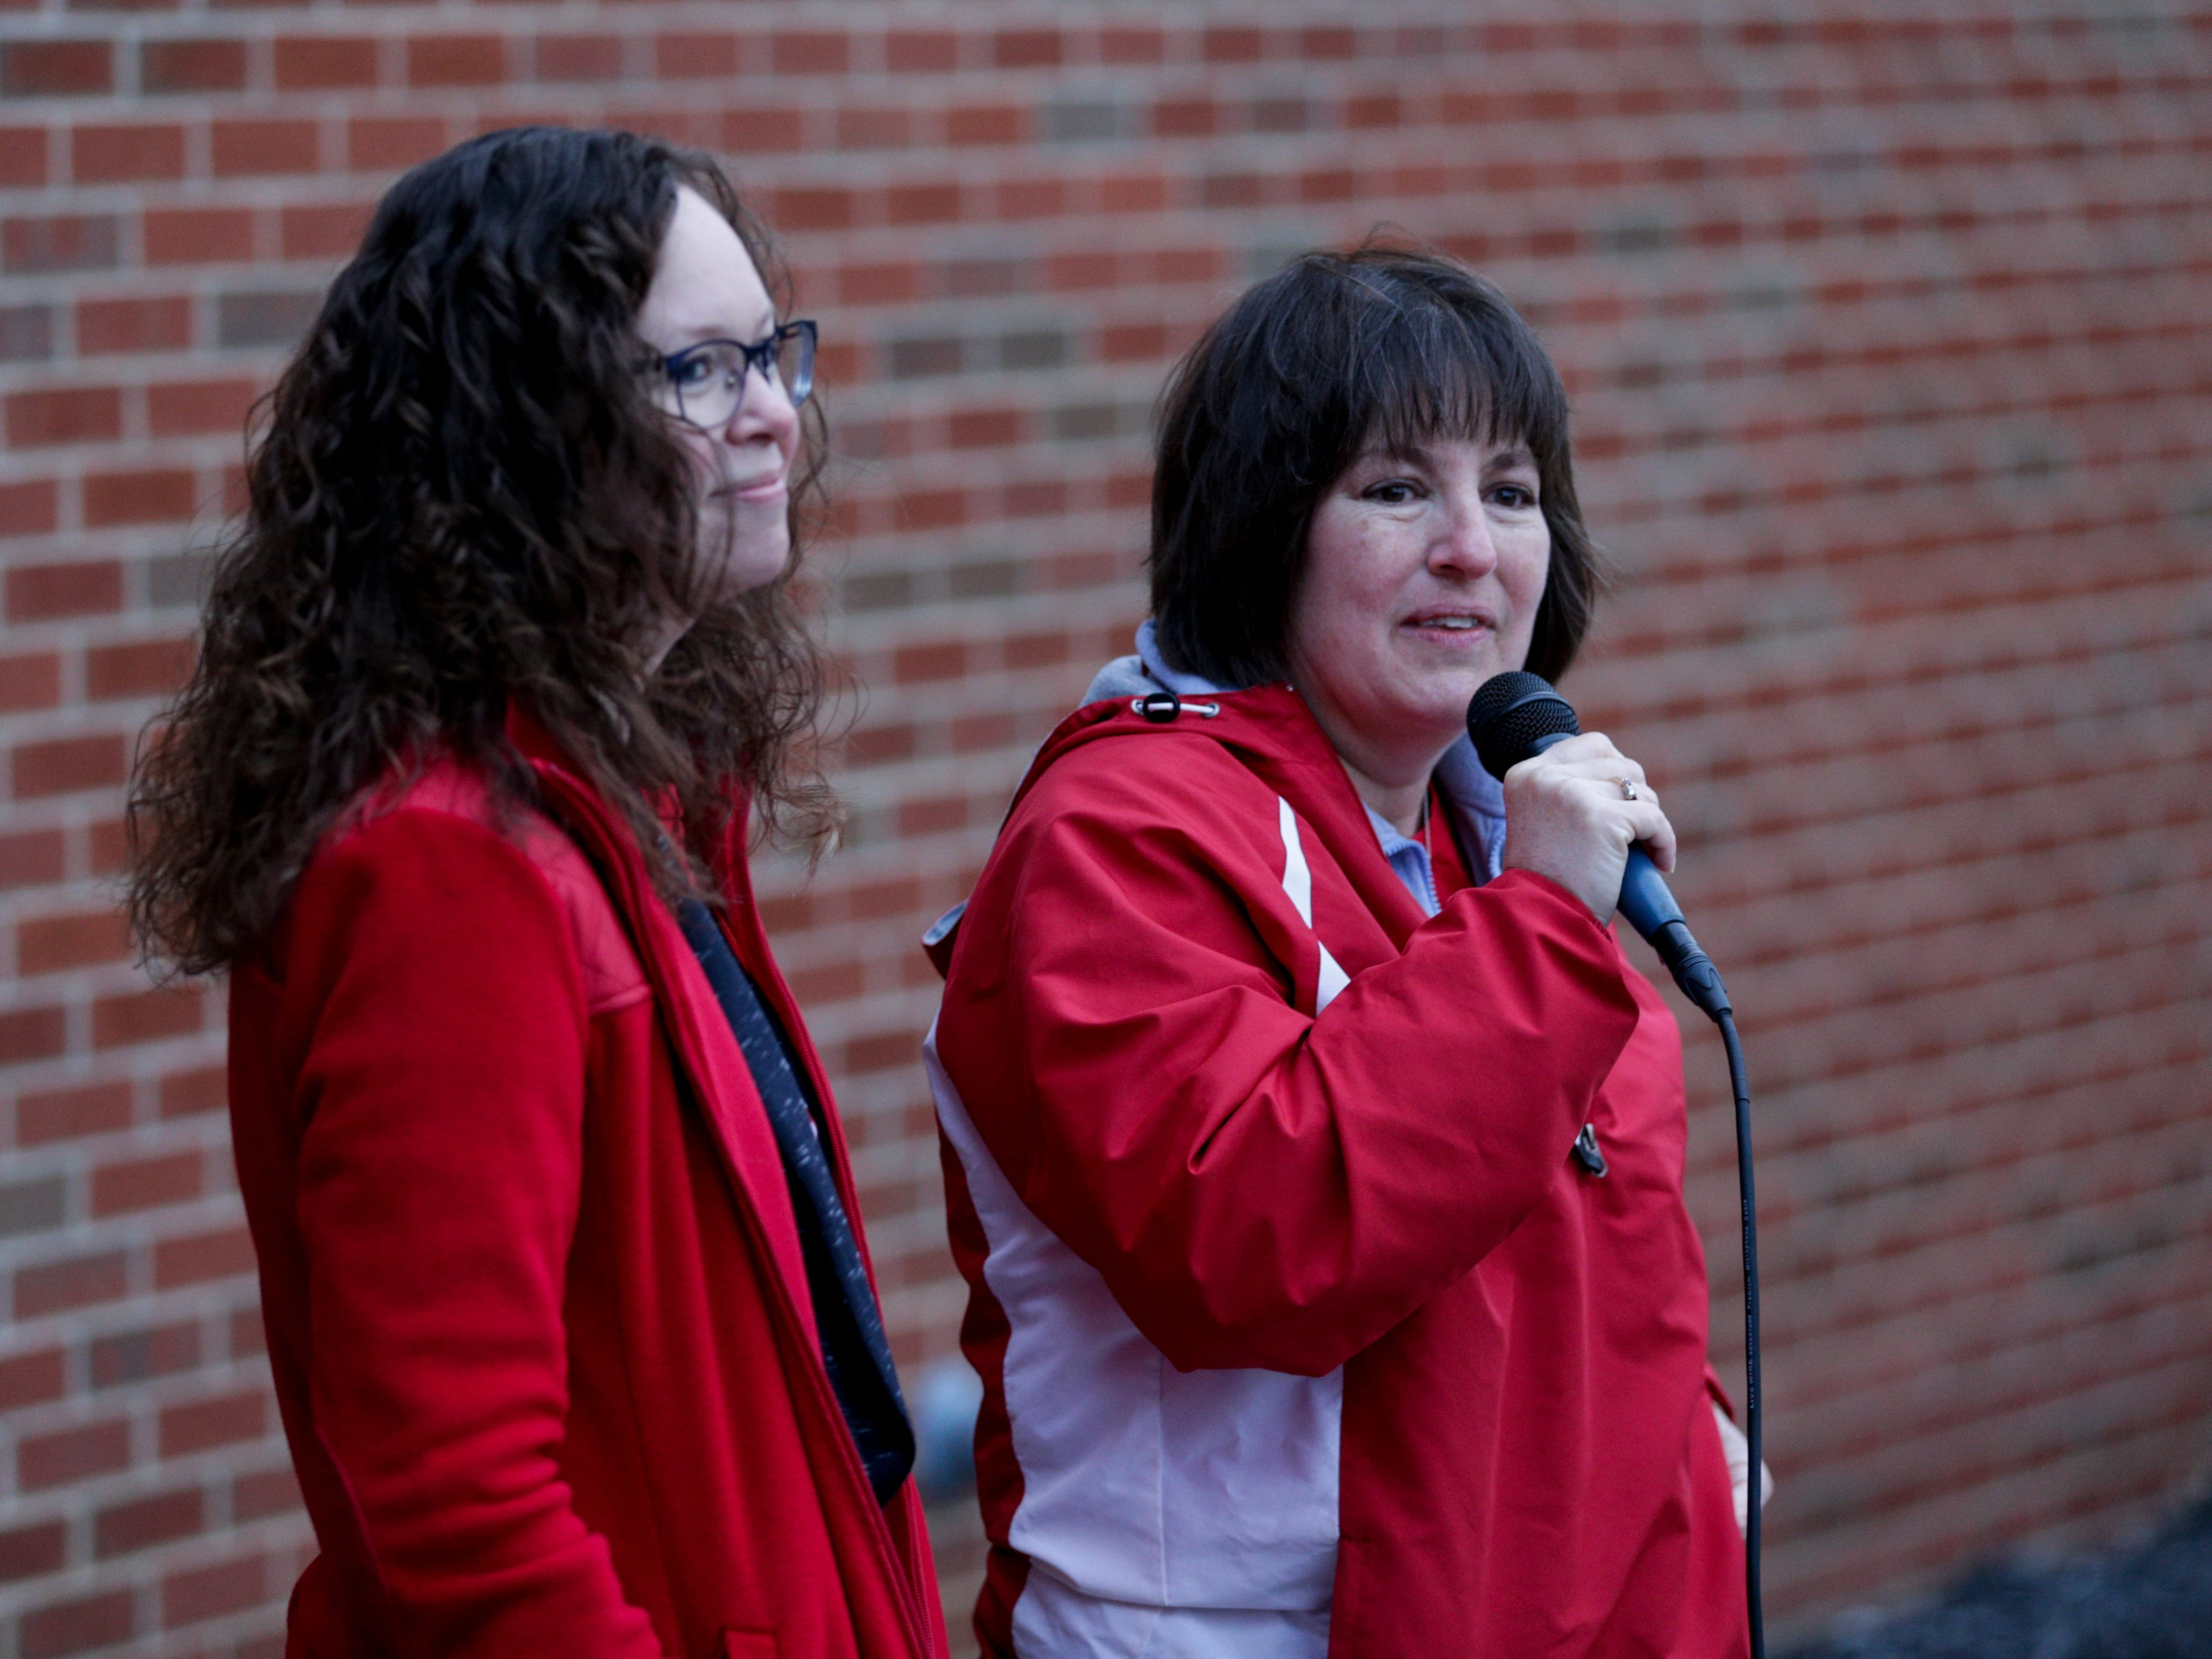 Marydell Forbes, West Lafayette Educators Association co-president, right, speaks, Wednesday, April 10, 2019, at West Lafayette Jr./Sr. High School in West Lafayette. Greater Lafayette teachers and community members gathered outside schools before walking in to demand teacher salary raises.(Nikos Frazier   Journal & Courier)